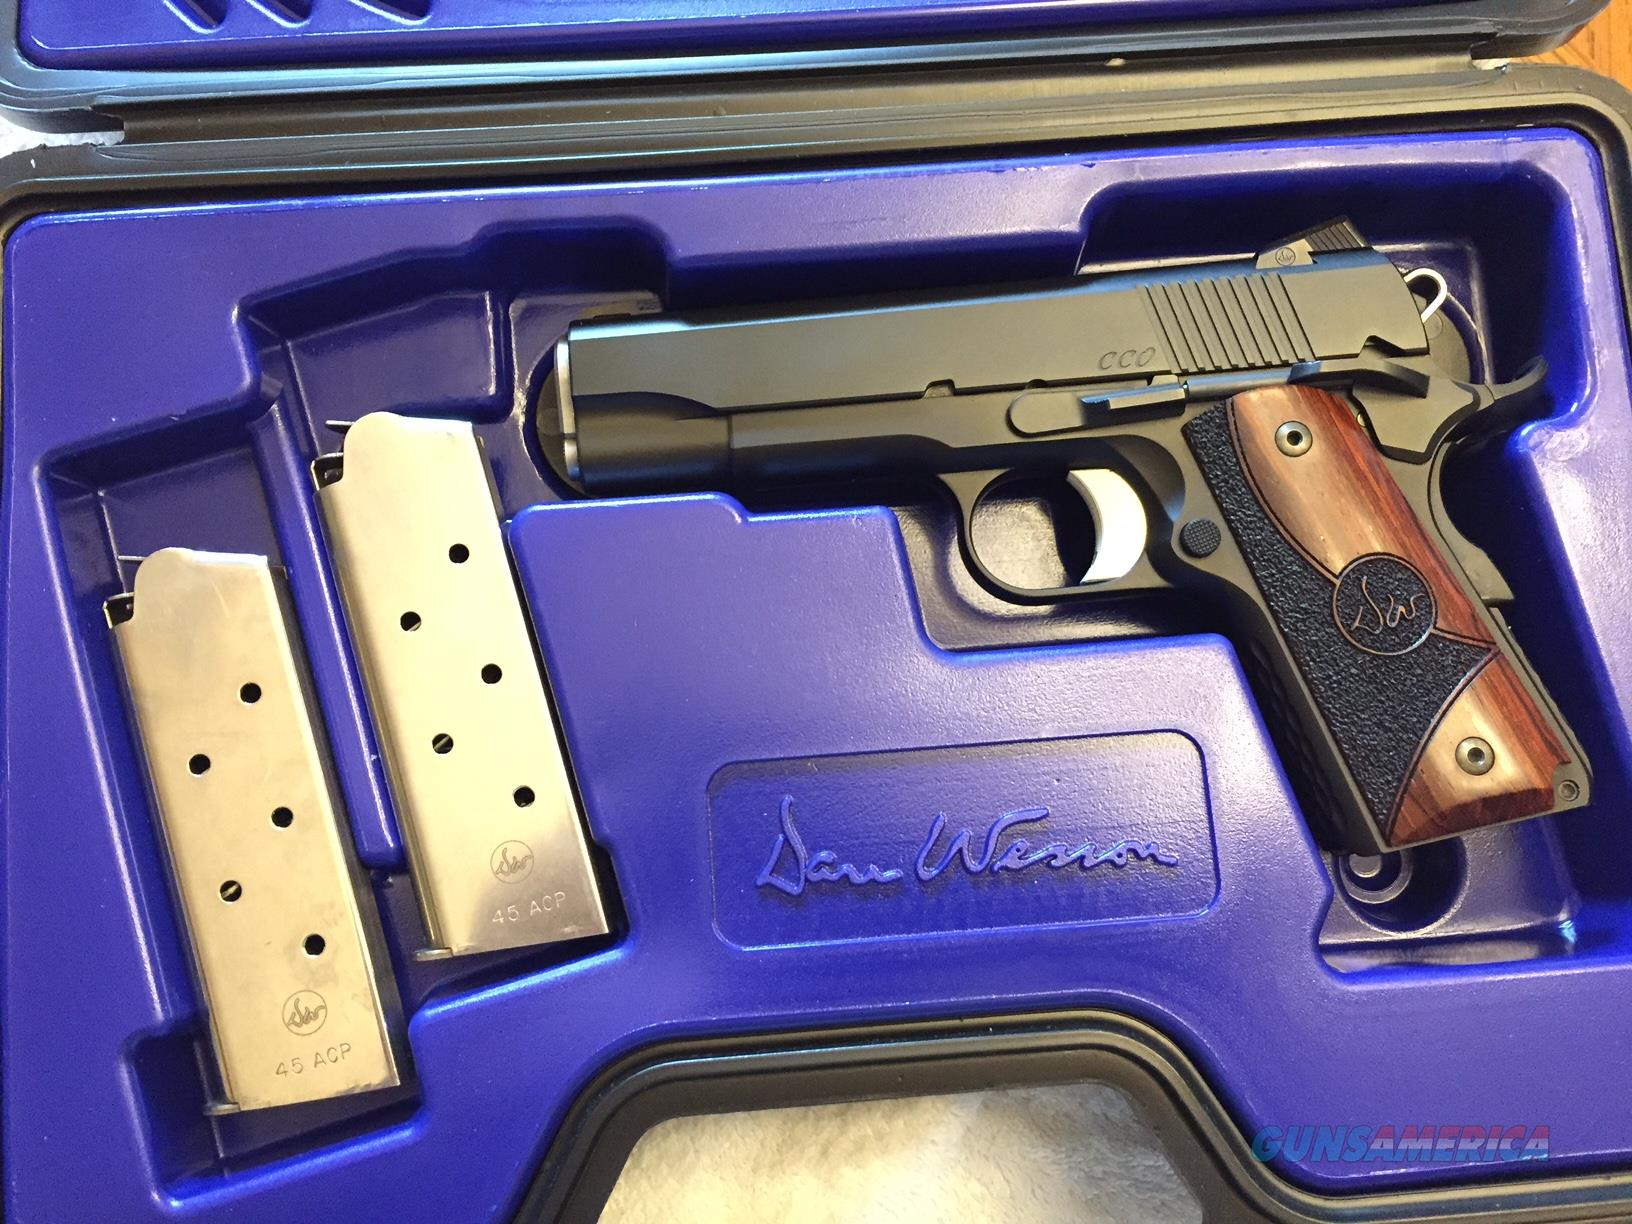 Dan Wesson CCO 45 ACP Custom - Exceptional - Used - Like New / low round count  Guns > Pistols > Dan Wesson Pistols/Revolvers > 1911 Style